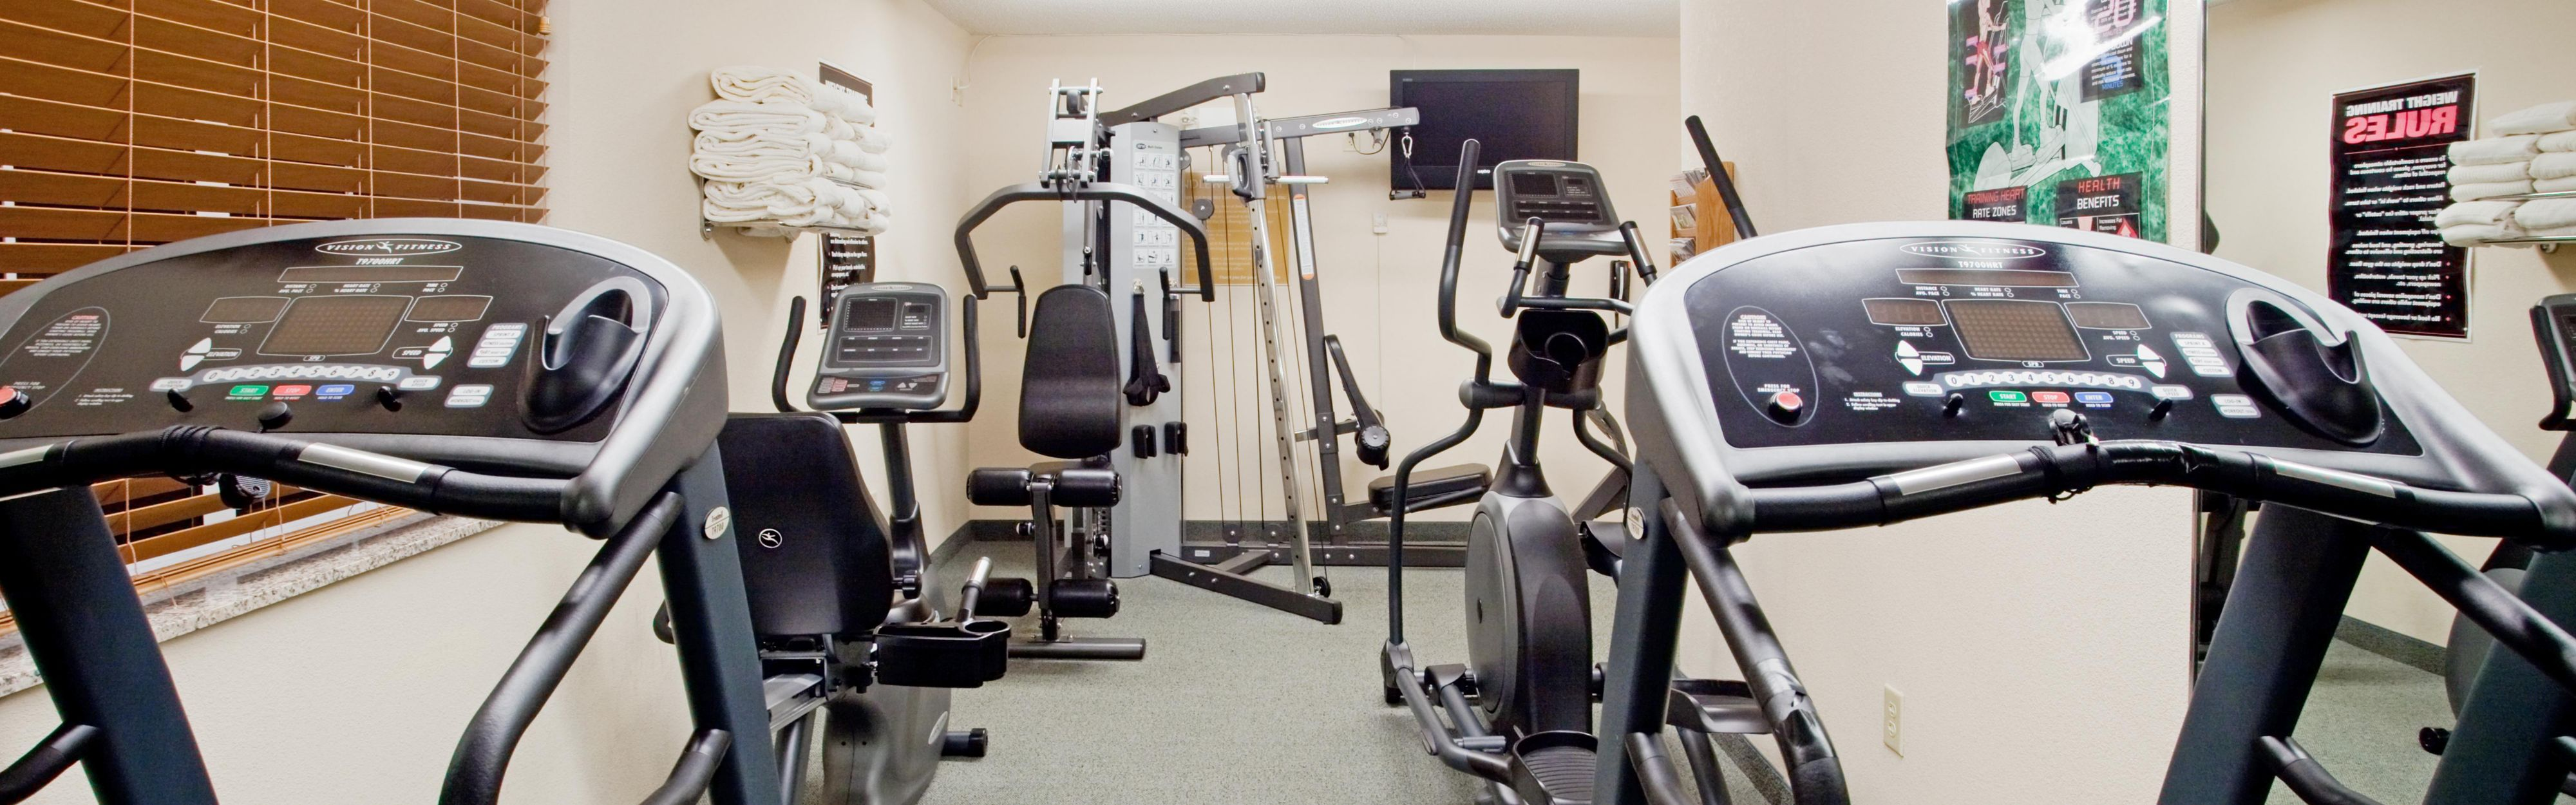 Candlewood Suites Colonial Heights-Ft Lee image 2